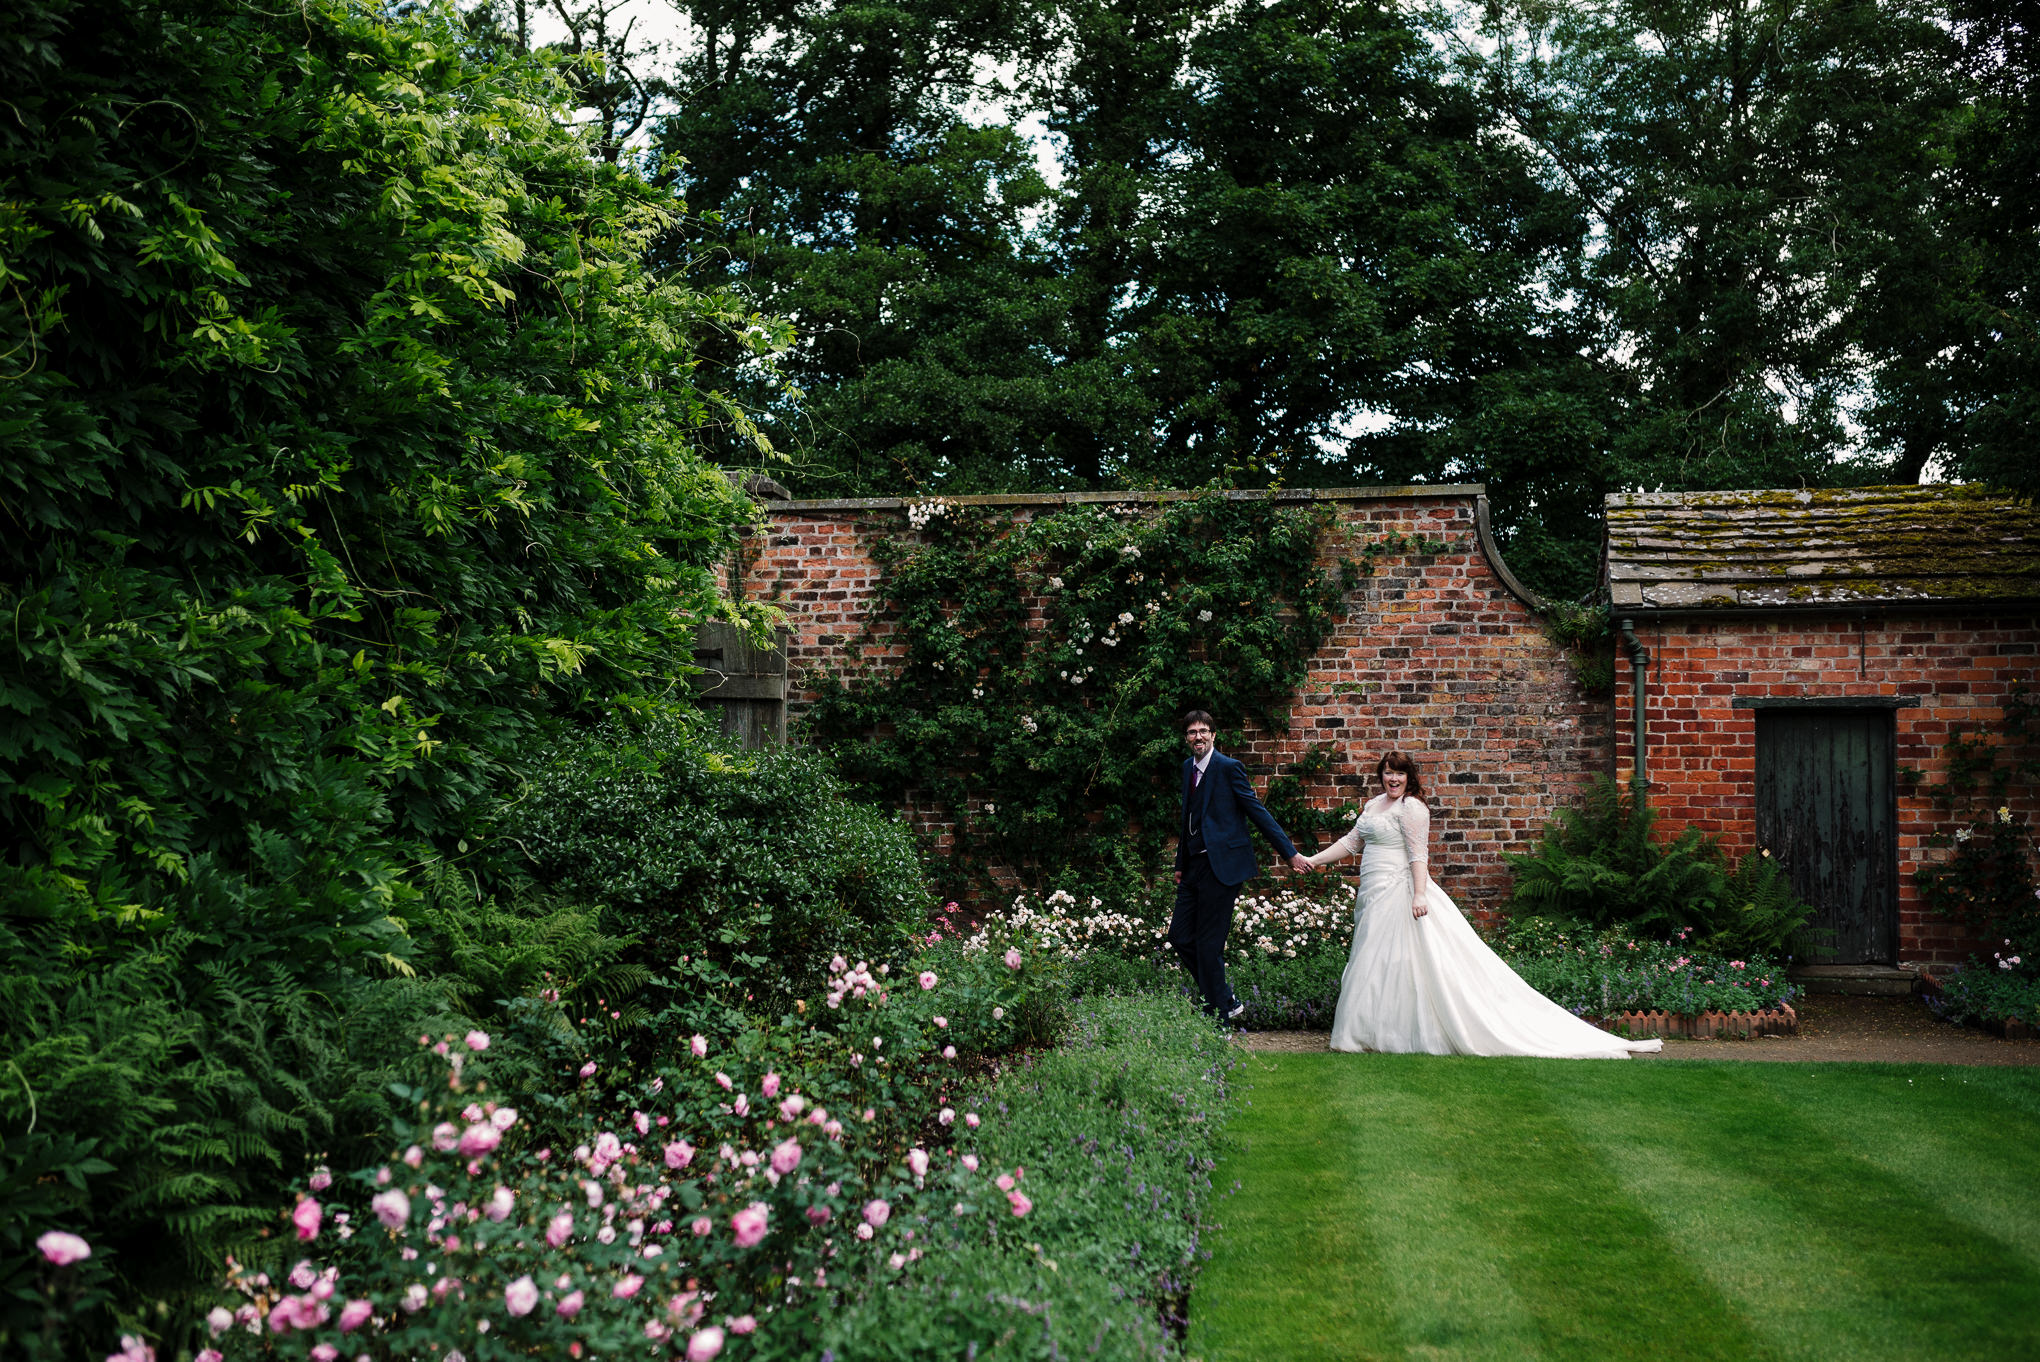 Bride and groom holding hands in the gardens at Rufford Old Hall, Lancashire.